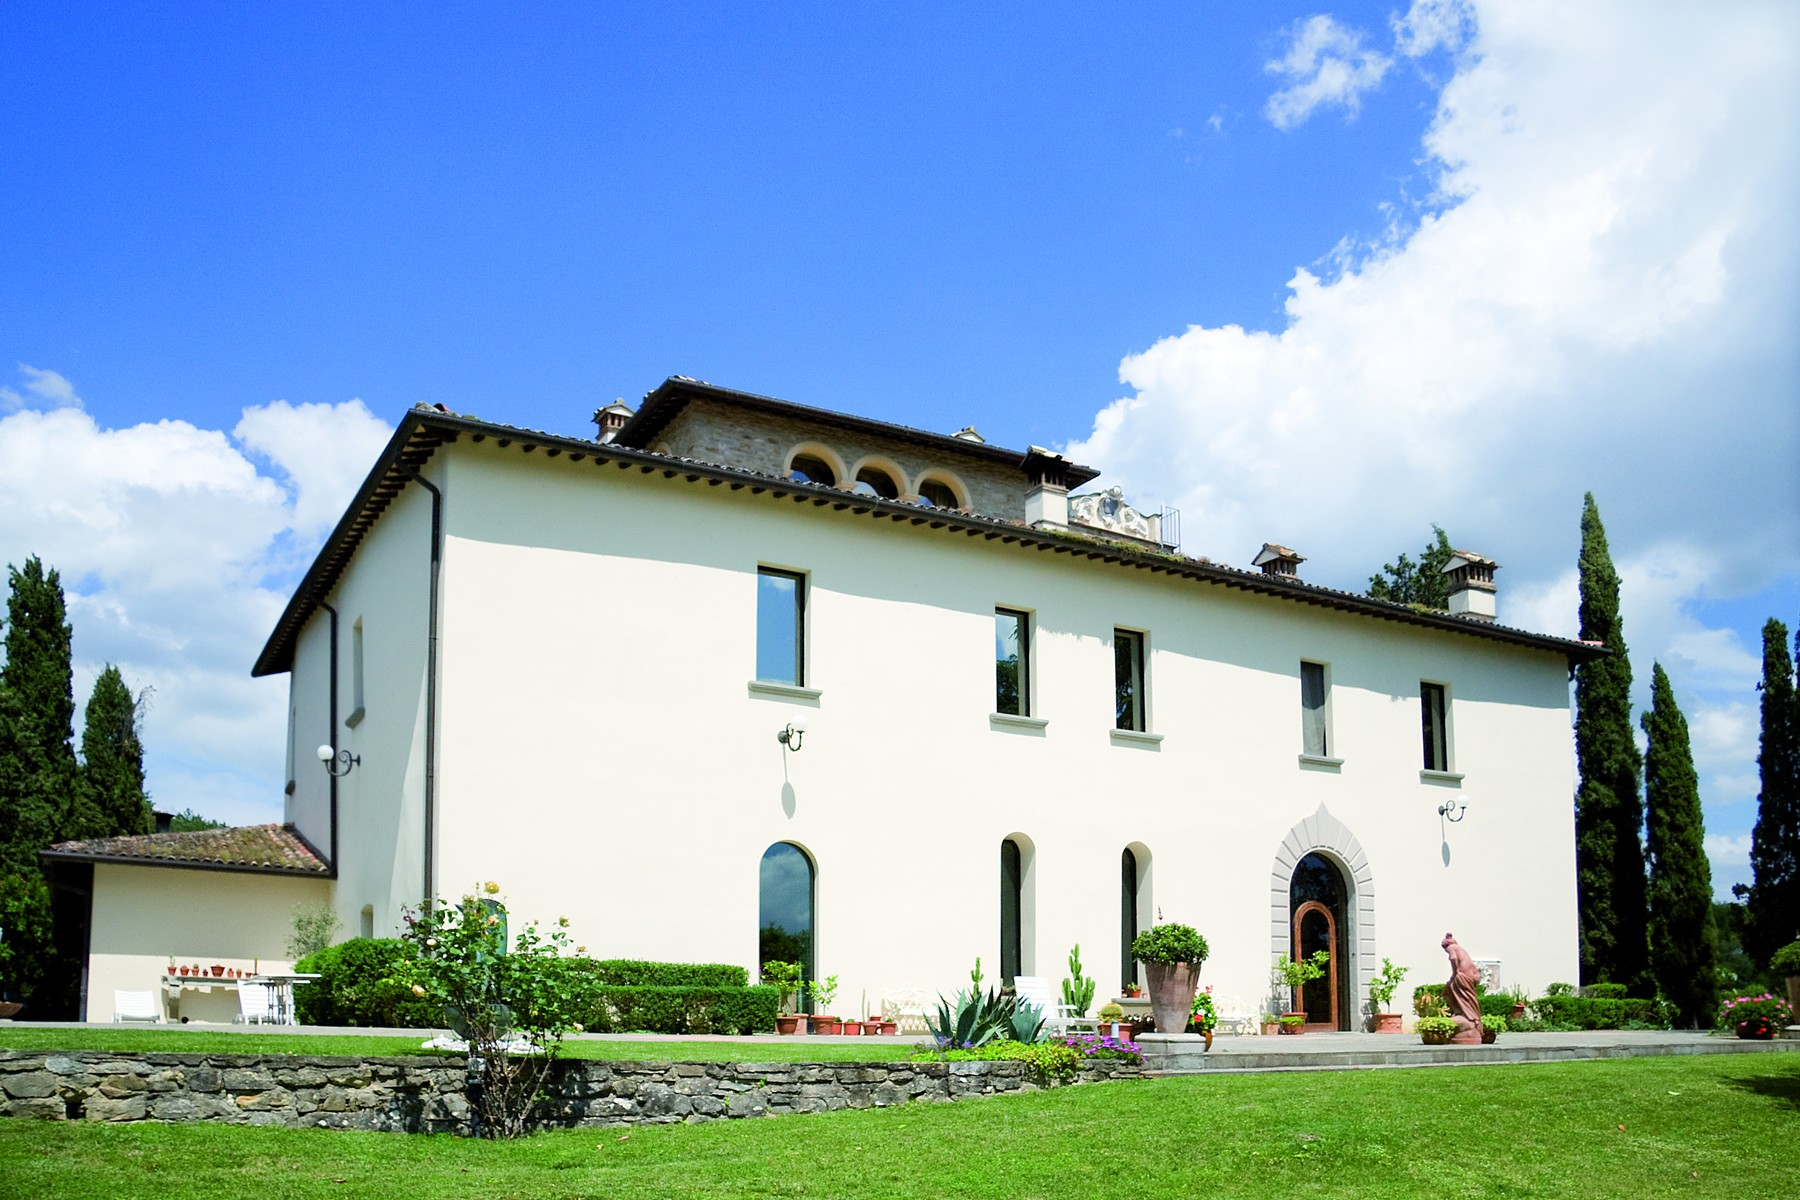 Single Family Home for Sale at Exclusive villa in umbrian countryside Voc. Coppi Citta Di Castello, Perugia 06012 Italy